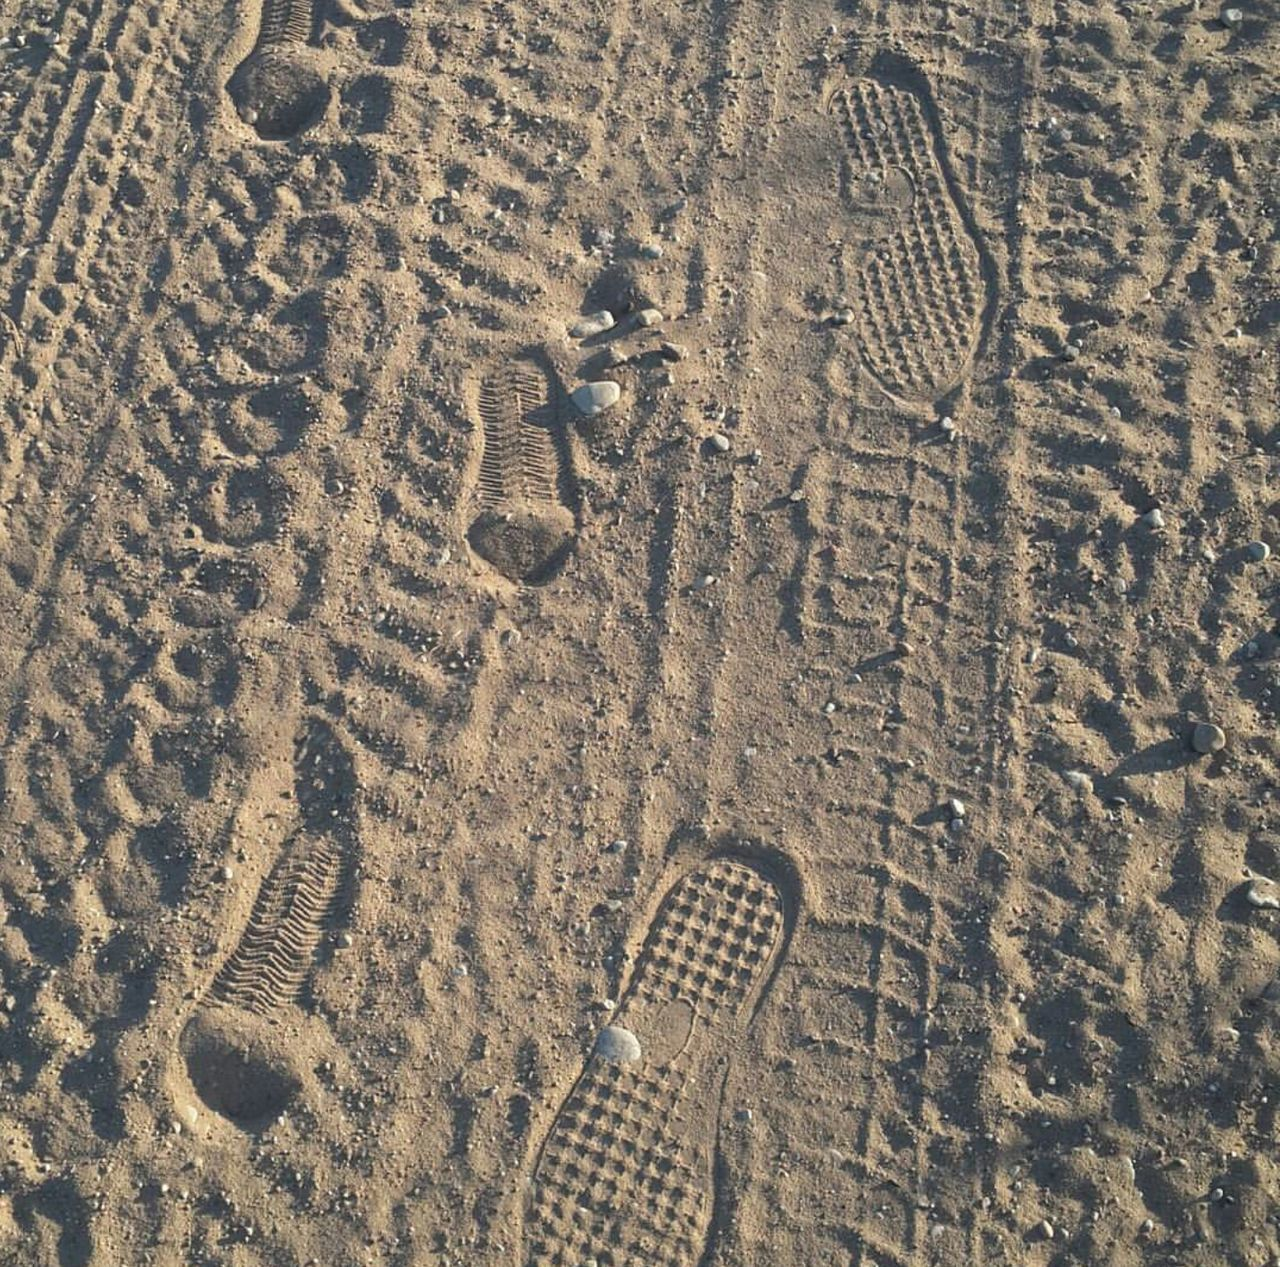 sand, beach, footprint, high angle view, day, paw print, brown, pattern, full frame, outdoors, no people, backgrounds, track - imprint, textured, tire track, nature